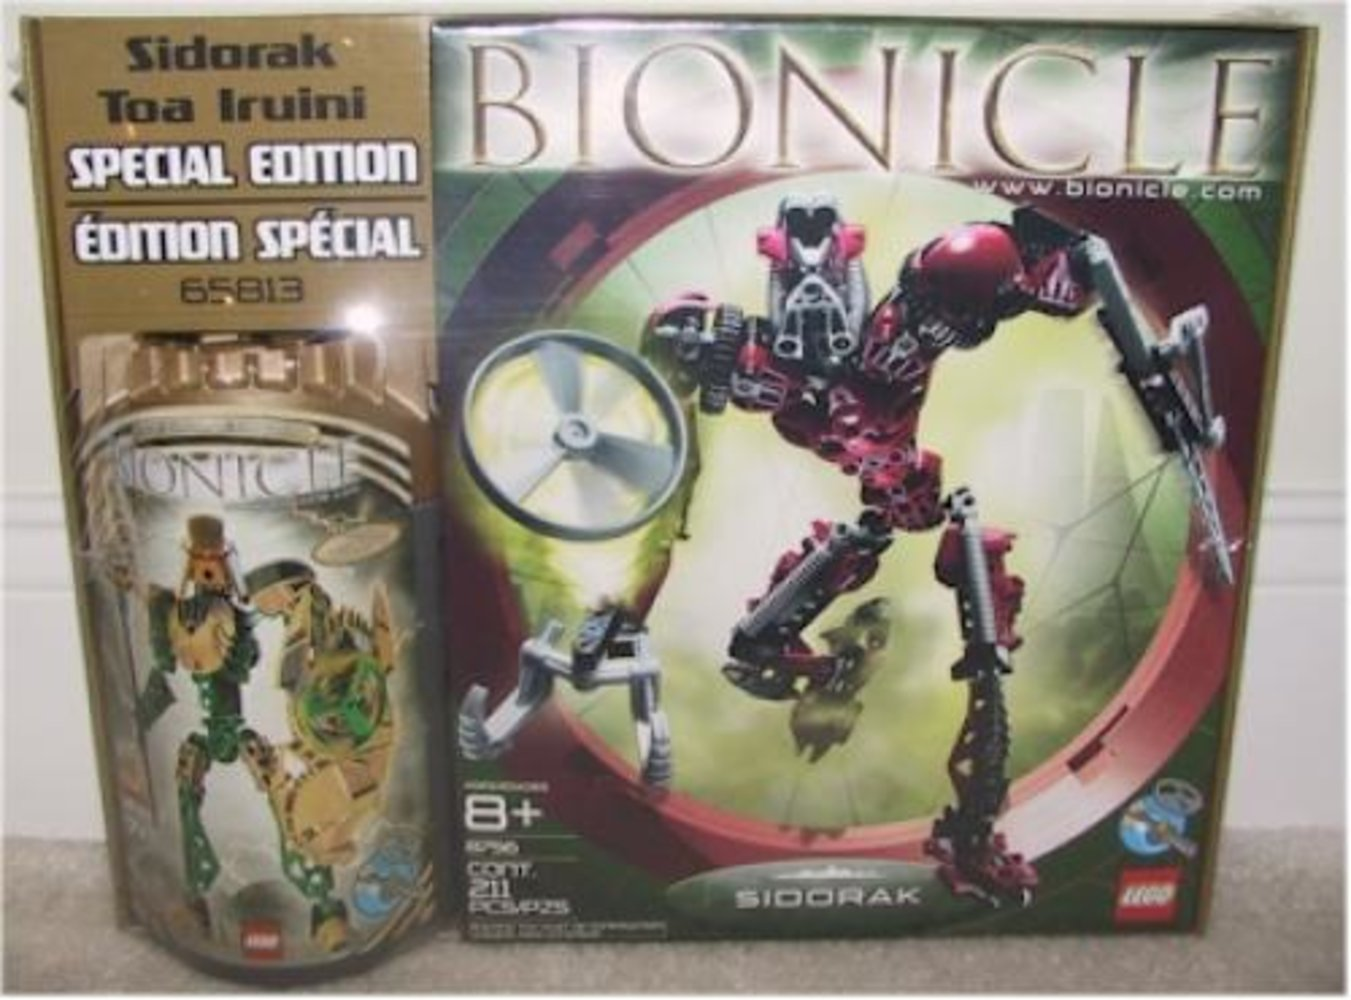 Special Edition Co-Pack with Sidorak and Toa Iruini (8756 8762)